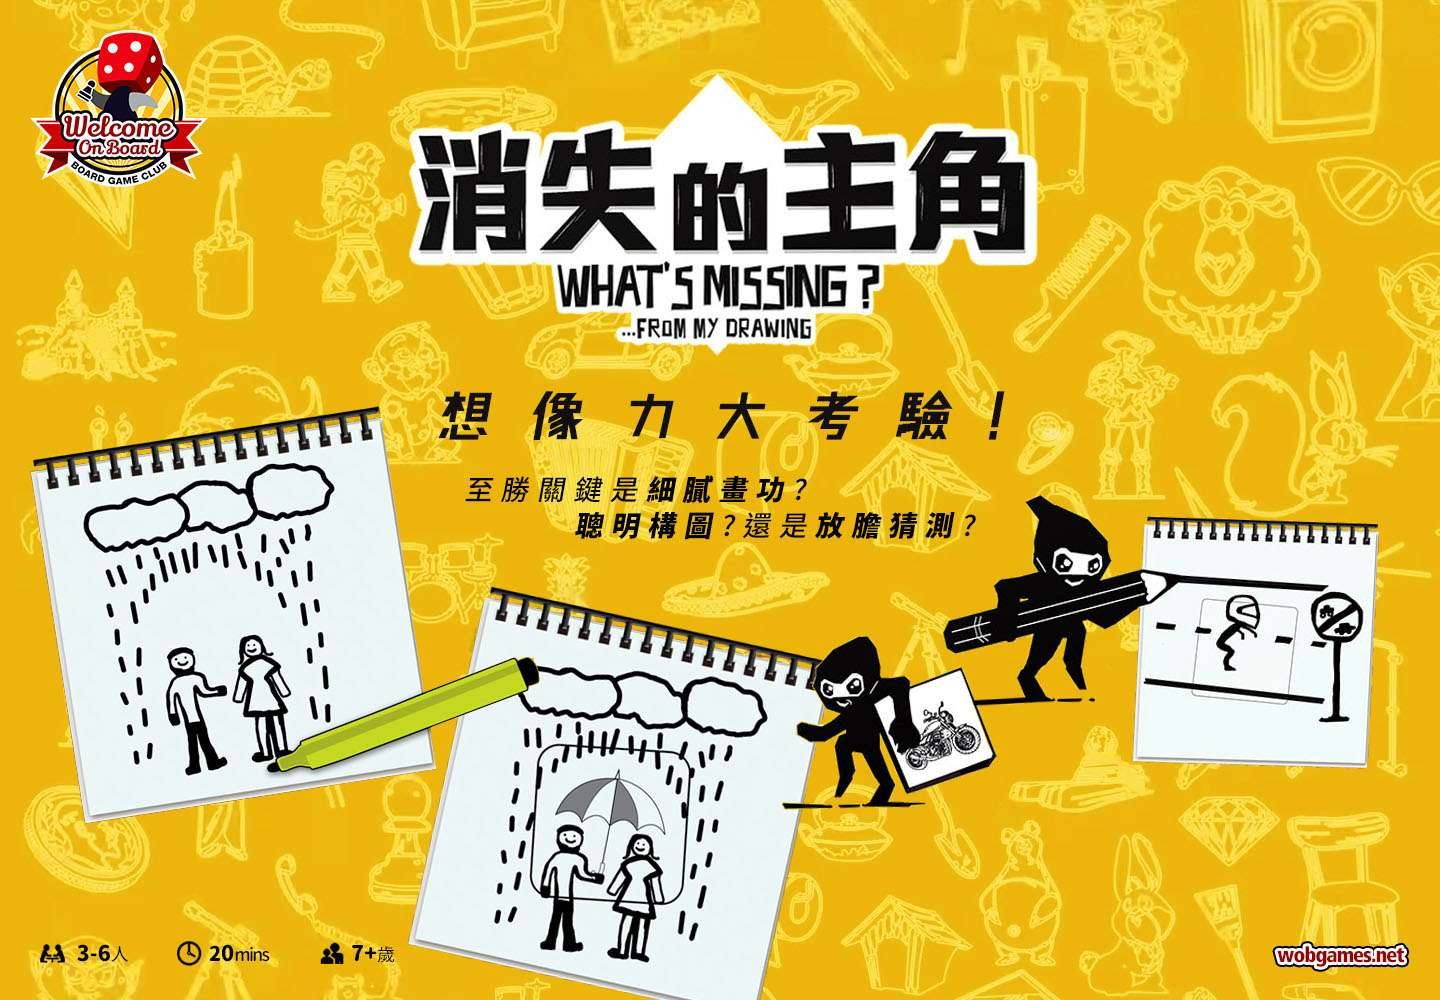 News: 消失的主角 What's Missing?|香港桌遊天地Welcome On Board Game Club Hong Kong|家庭親子派對聚會畫圖遊戲Party Game3-6人